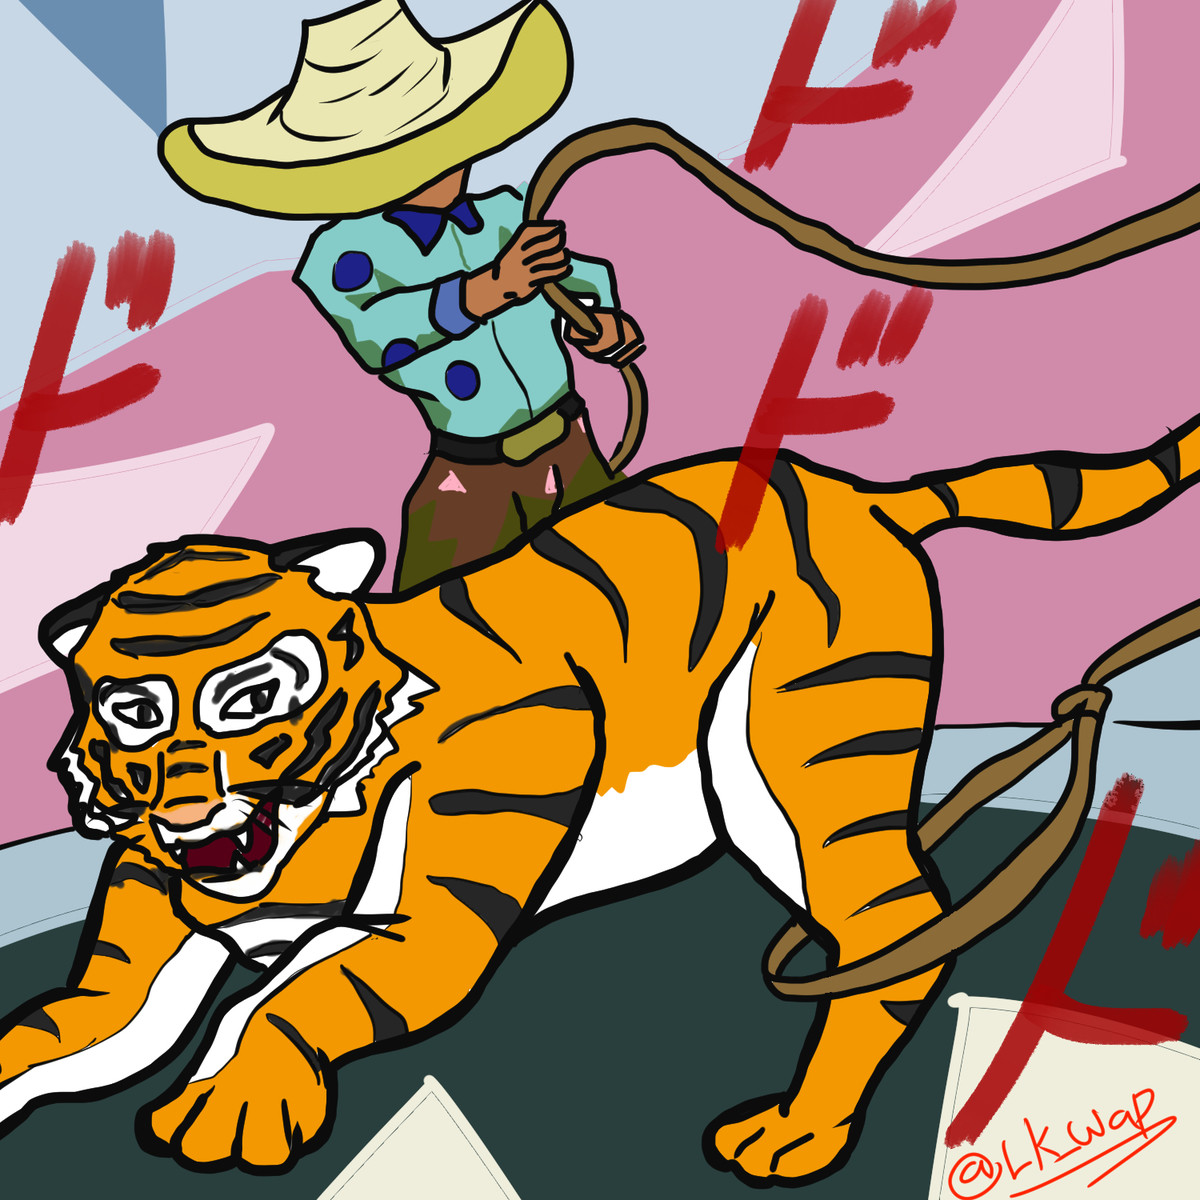 Tiger on the loose? My time to shine!. A tiger got loose somewhere in mexico, a charro (cowboy) lassoed it to capture it. And that's the most mexican thing I've